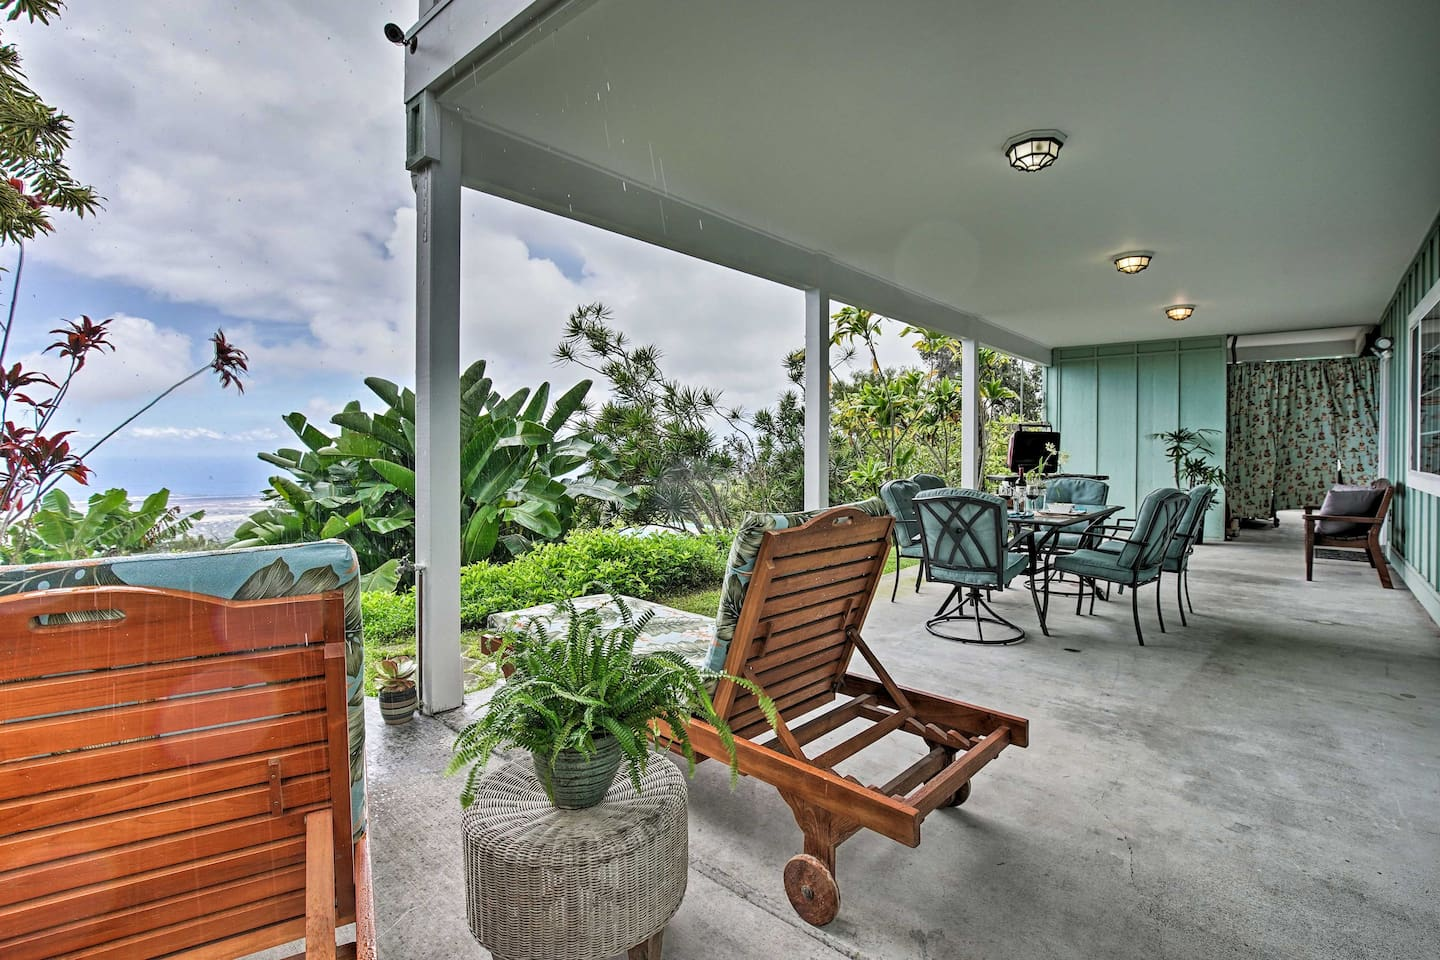 Enjoy spectacular views from the patio of this Kailua-Kona vacation rental!